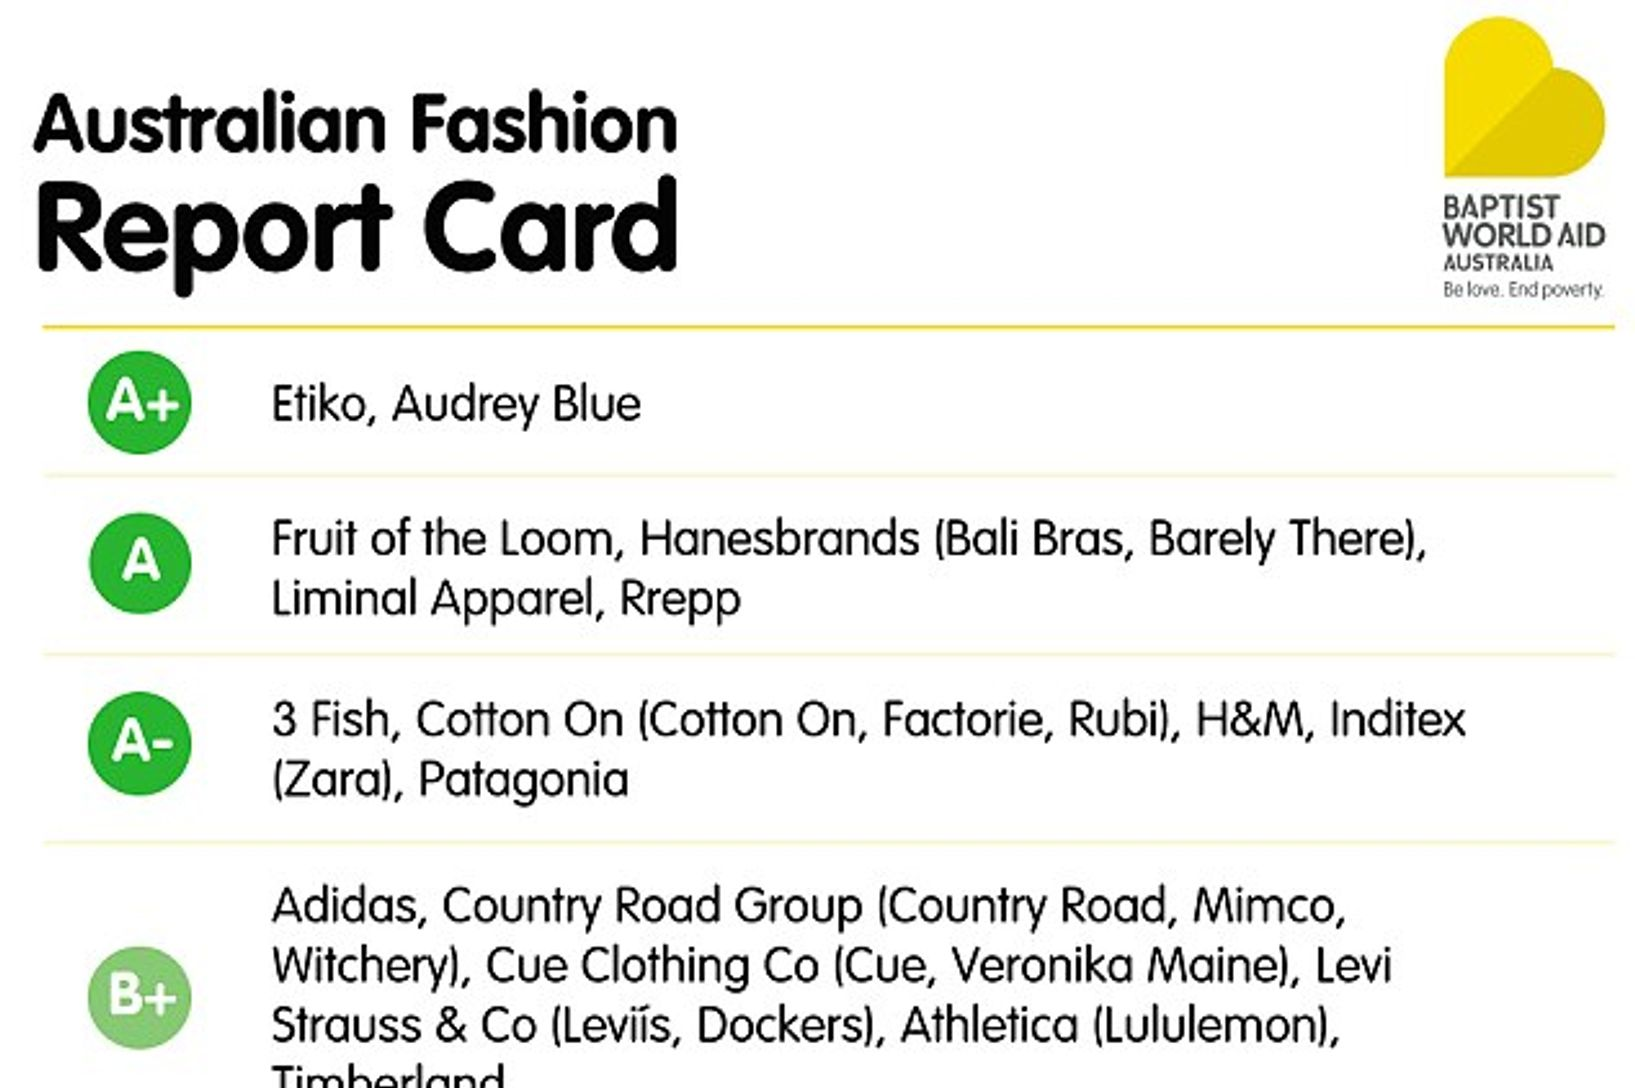 The Ethical Fashion Report - Helpful or harmful?